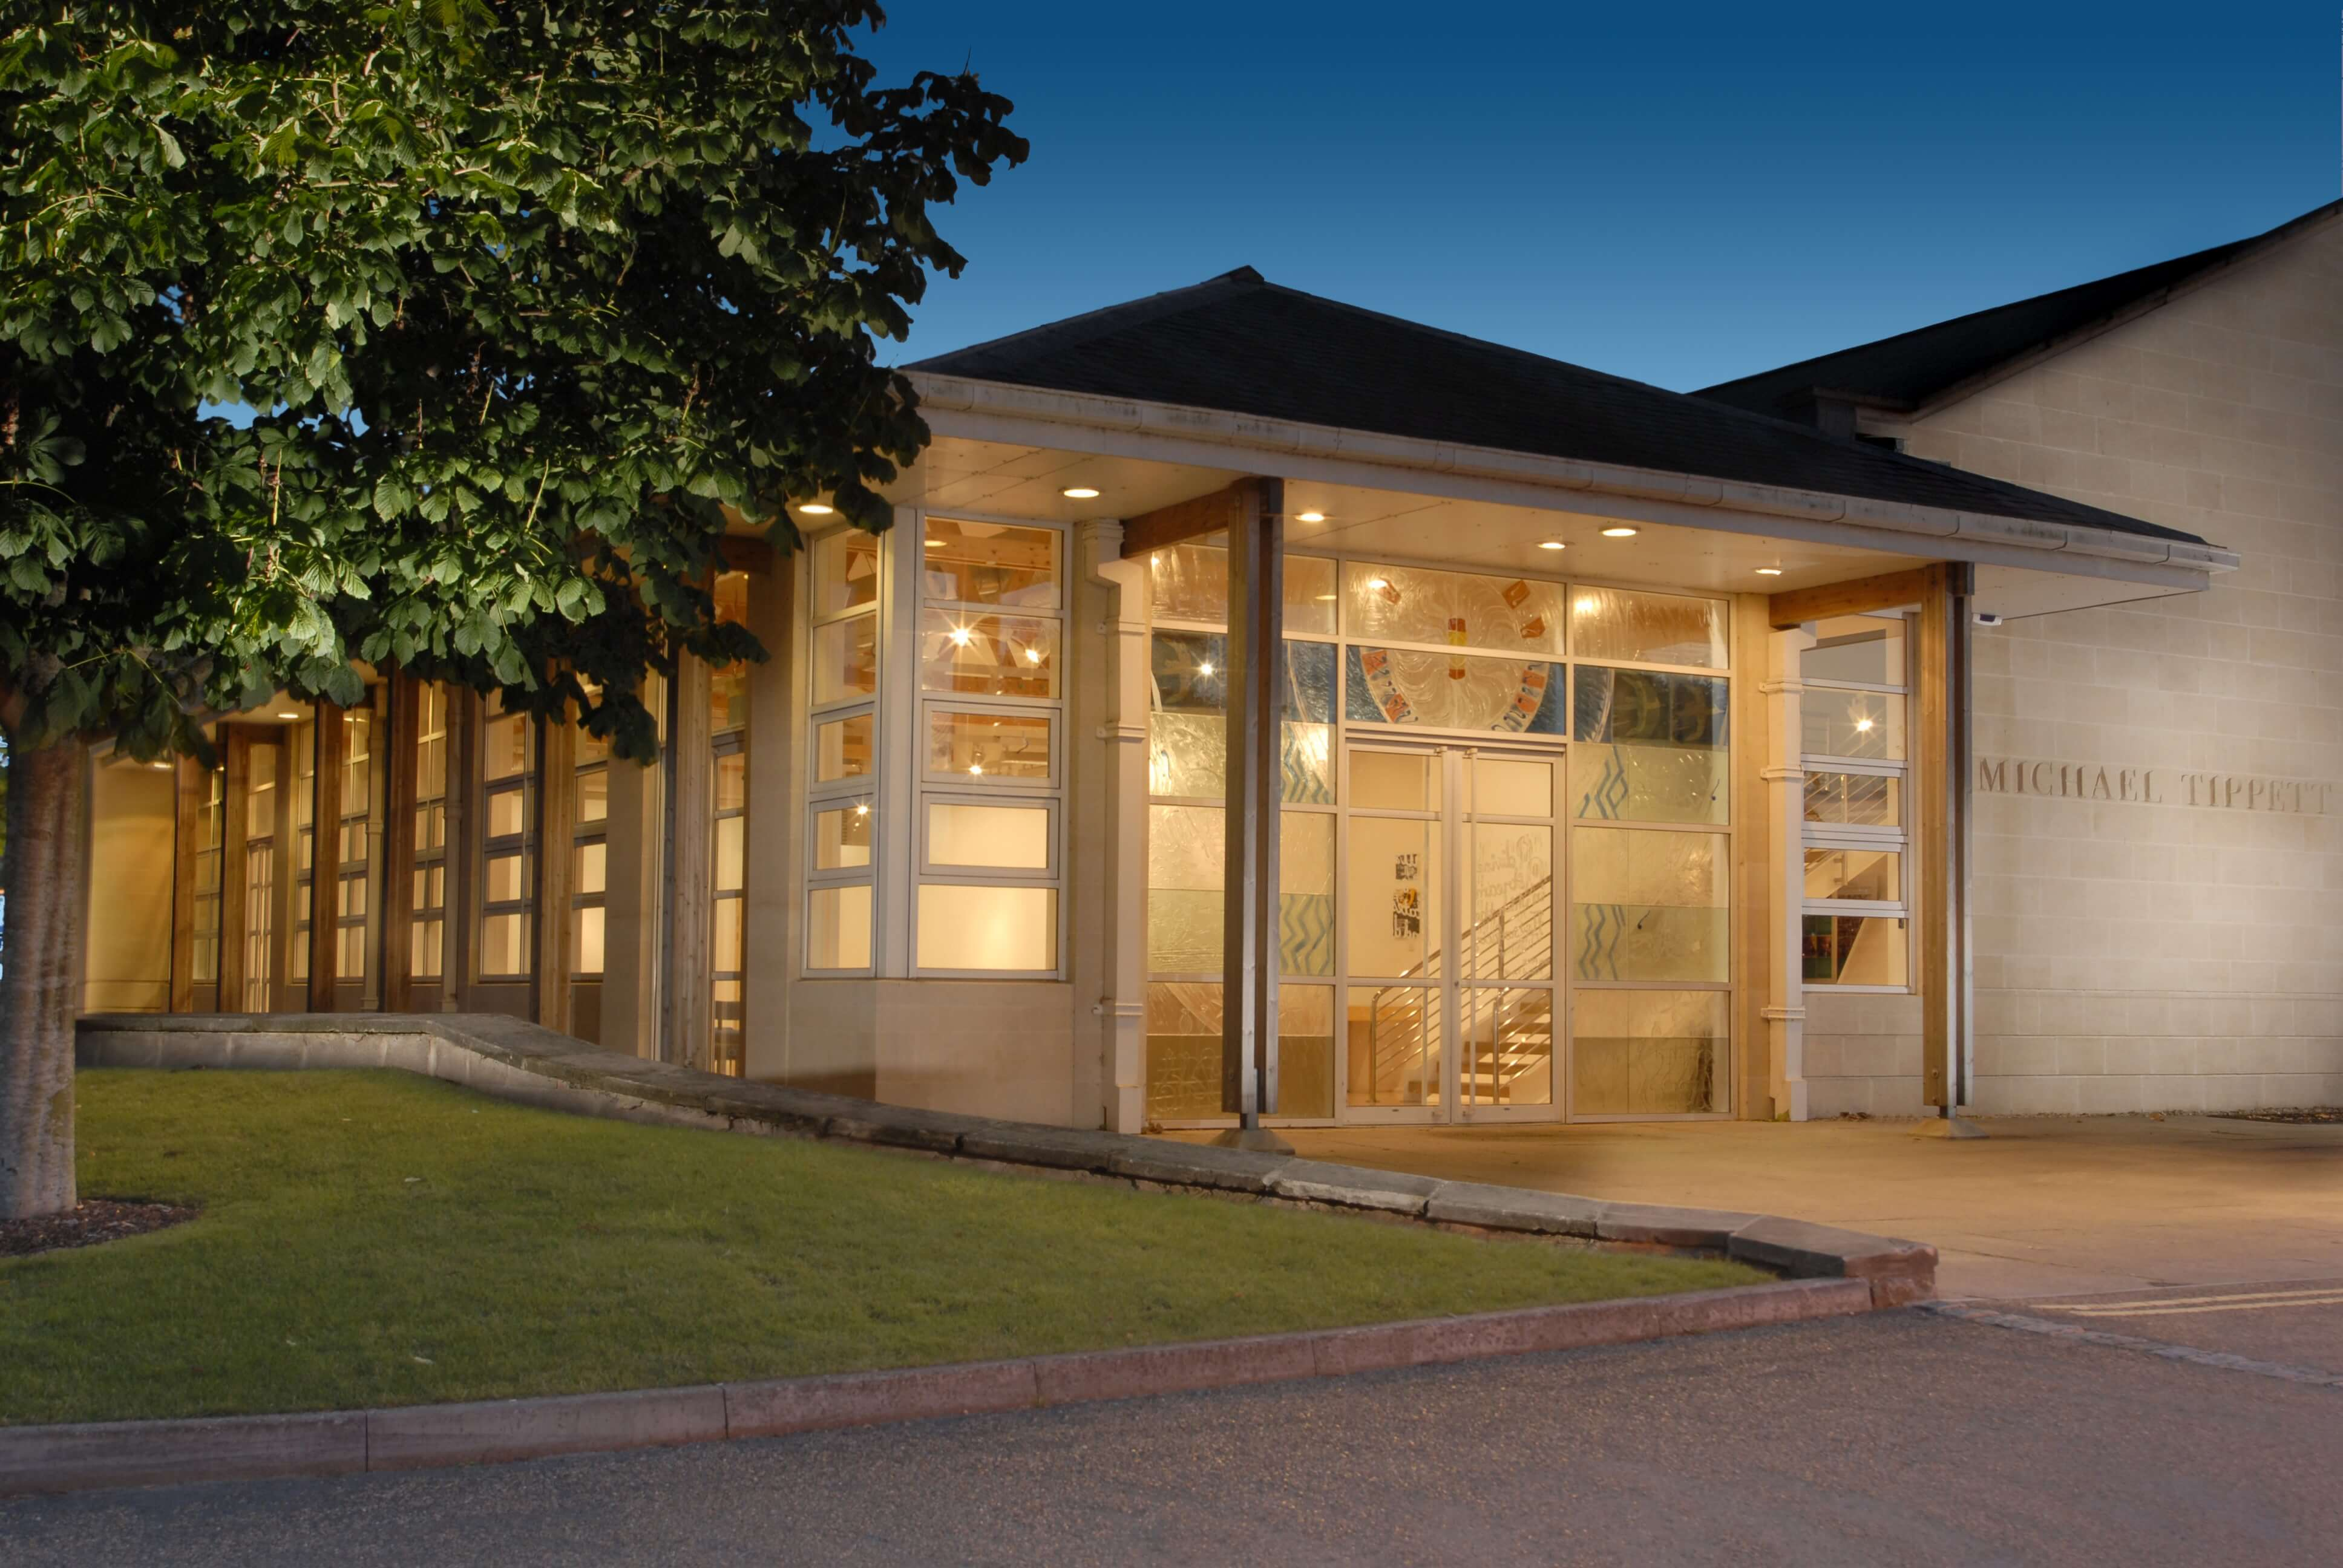 Exterior shot of the Michael Tippett Centre at night2